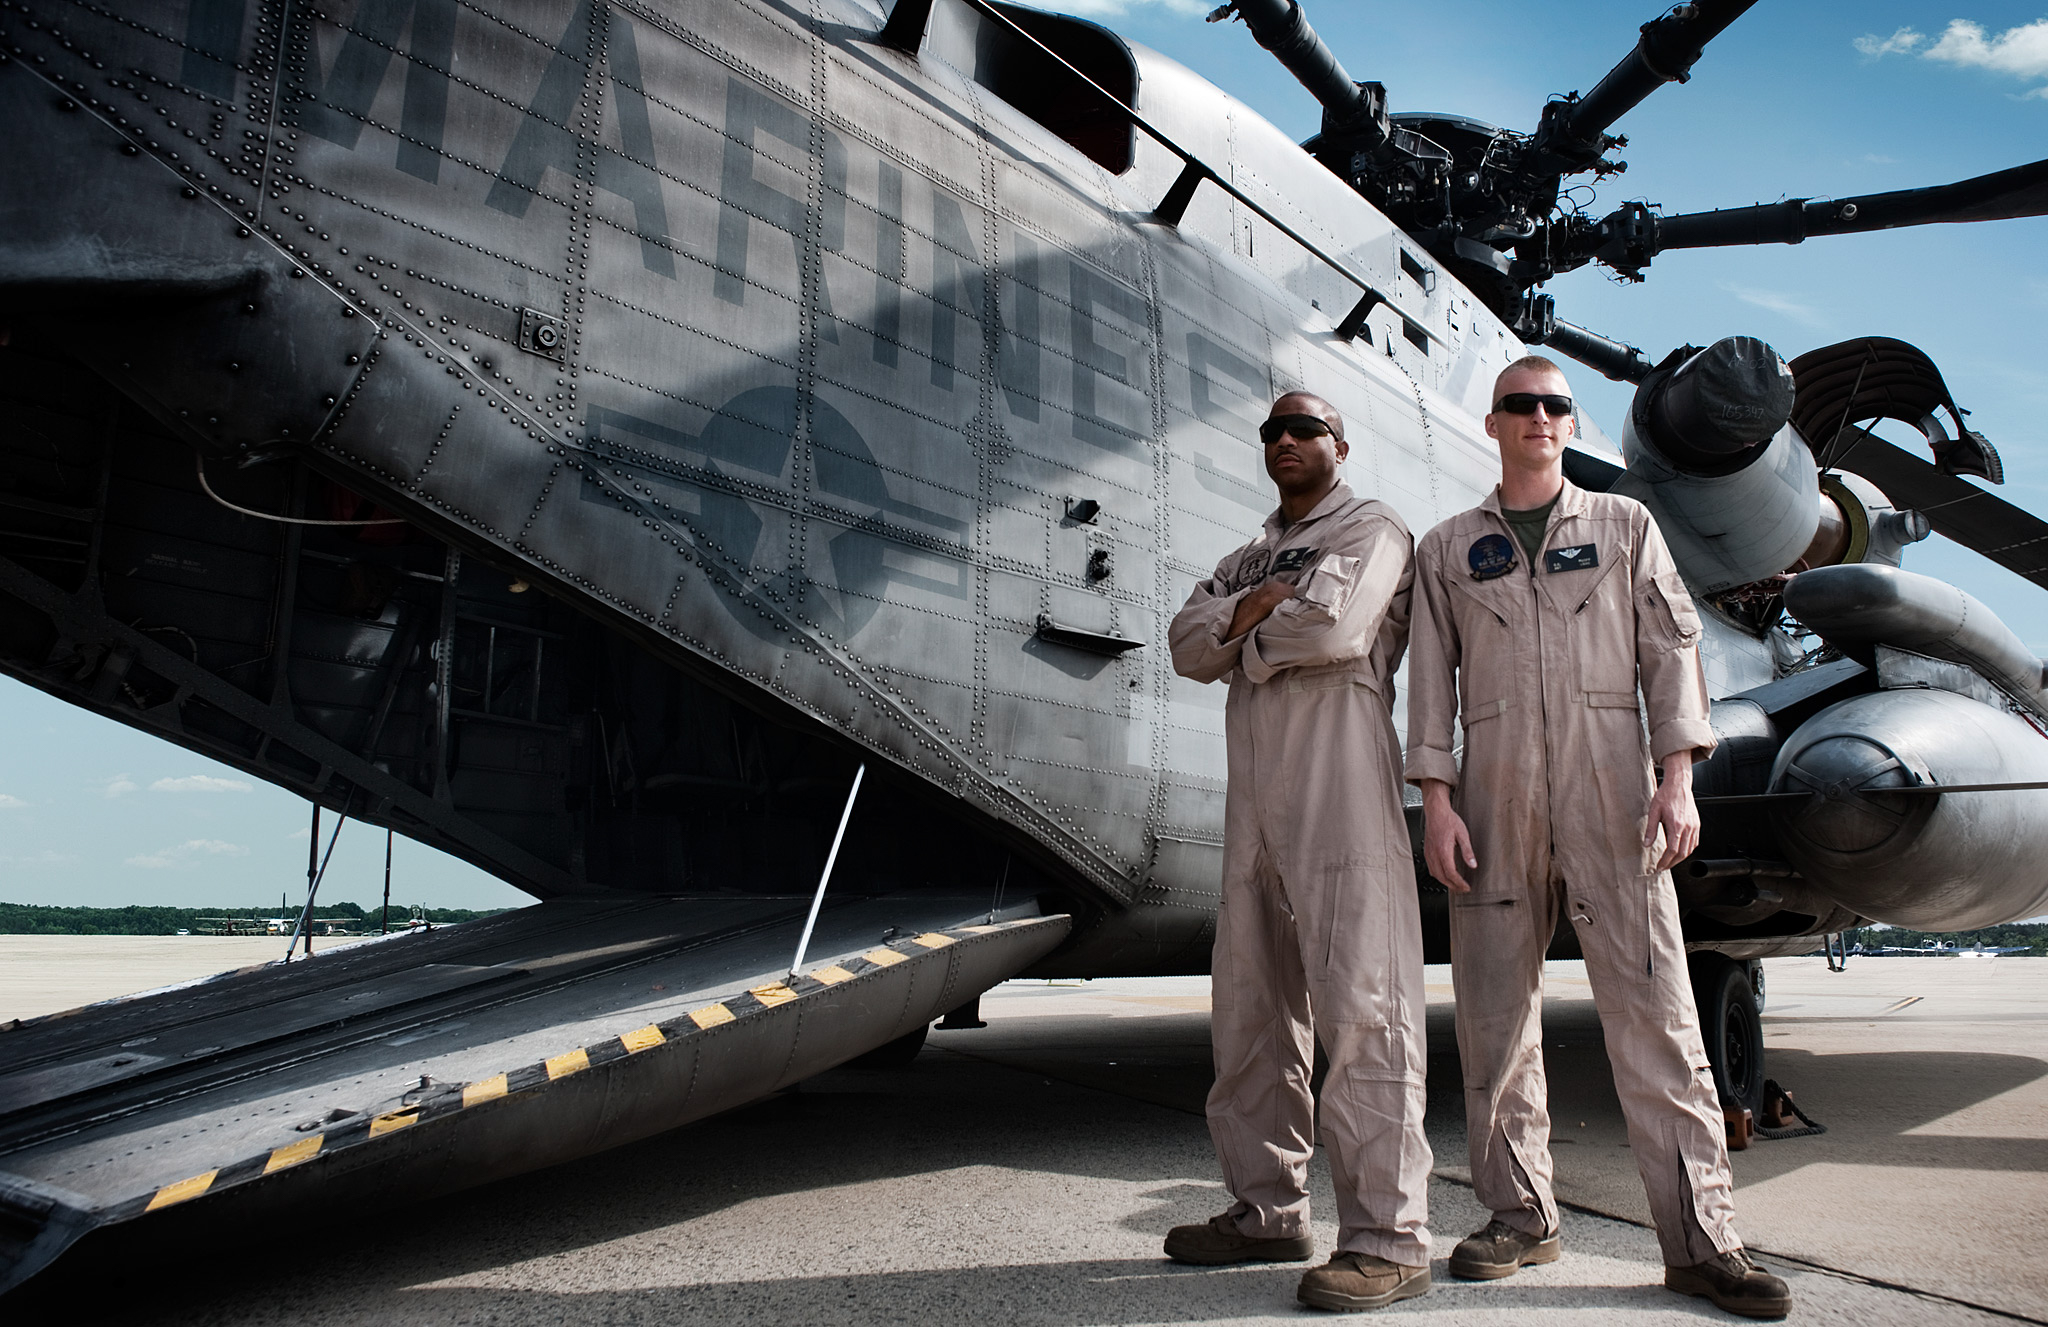 USMC Pilots standing by their CH-53 Helicopter